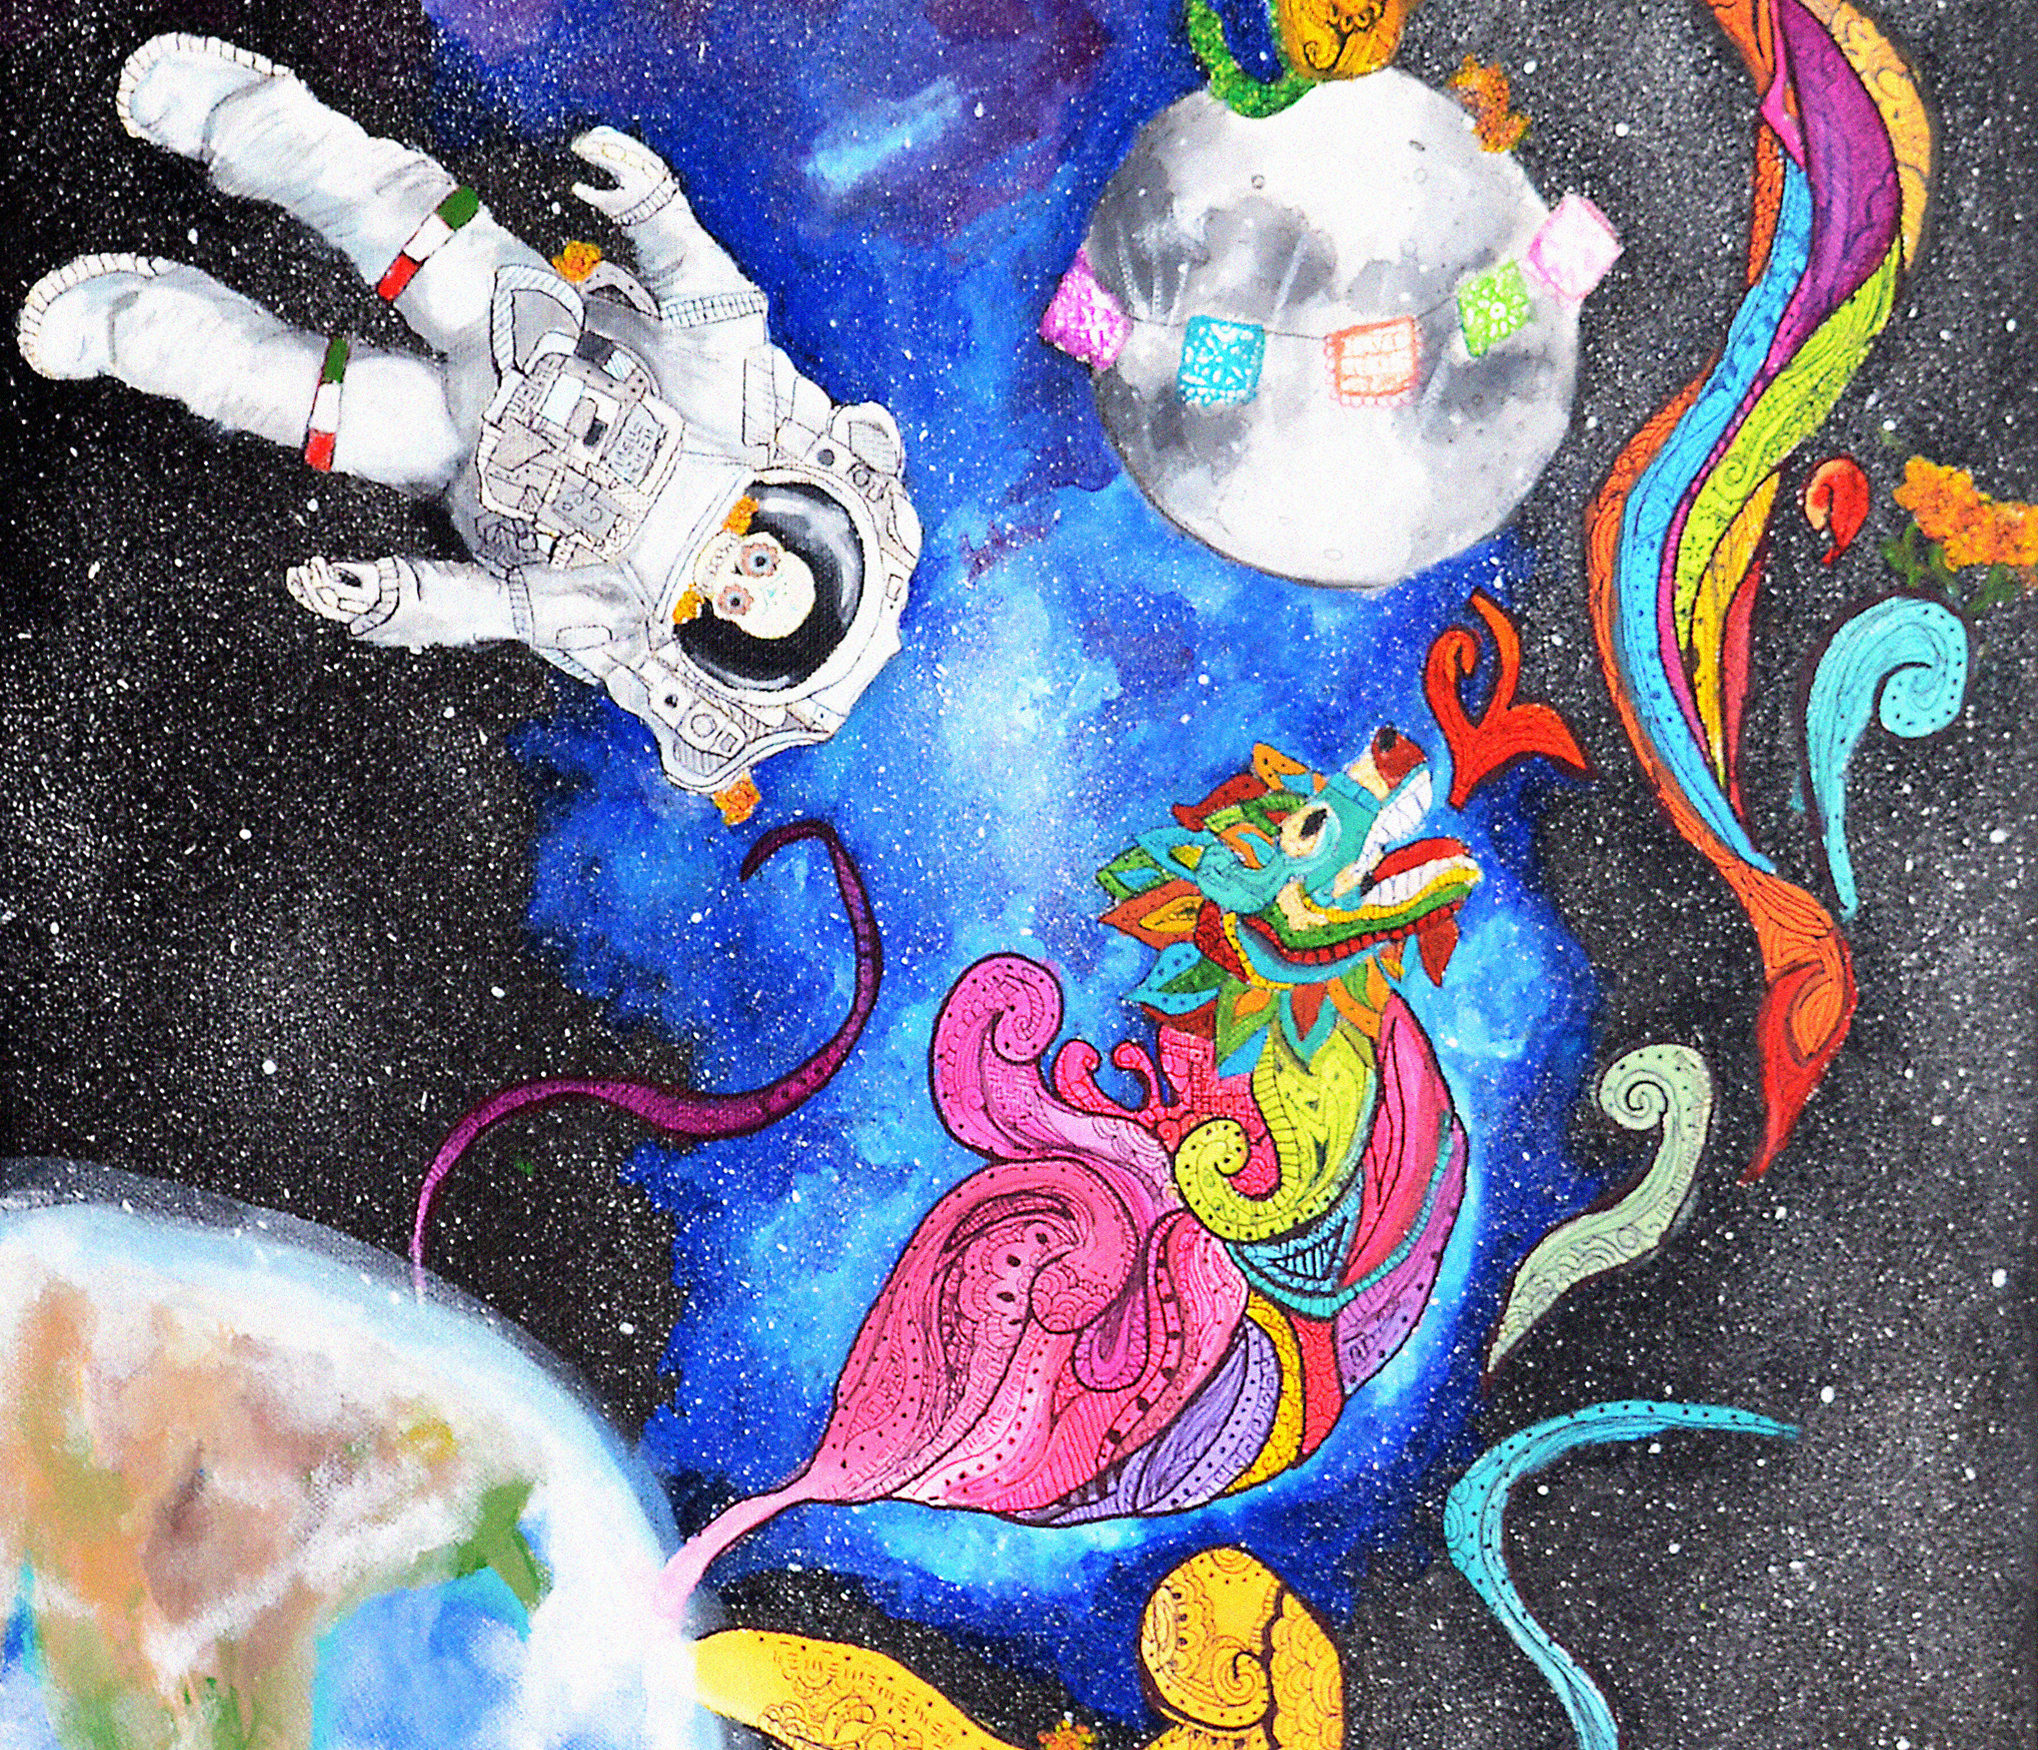 The image includes a water painting of a star-filled galaxy with the earth and the moon in the background. In the foreground, a Día de los Muertos skull astronaut and a stylized Chinese dragon float in front of the galaxy background. Purple-blue blocks sit on the top and bottom of the image.